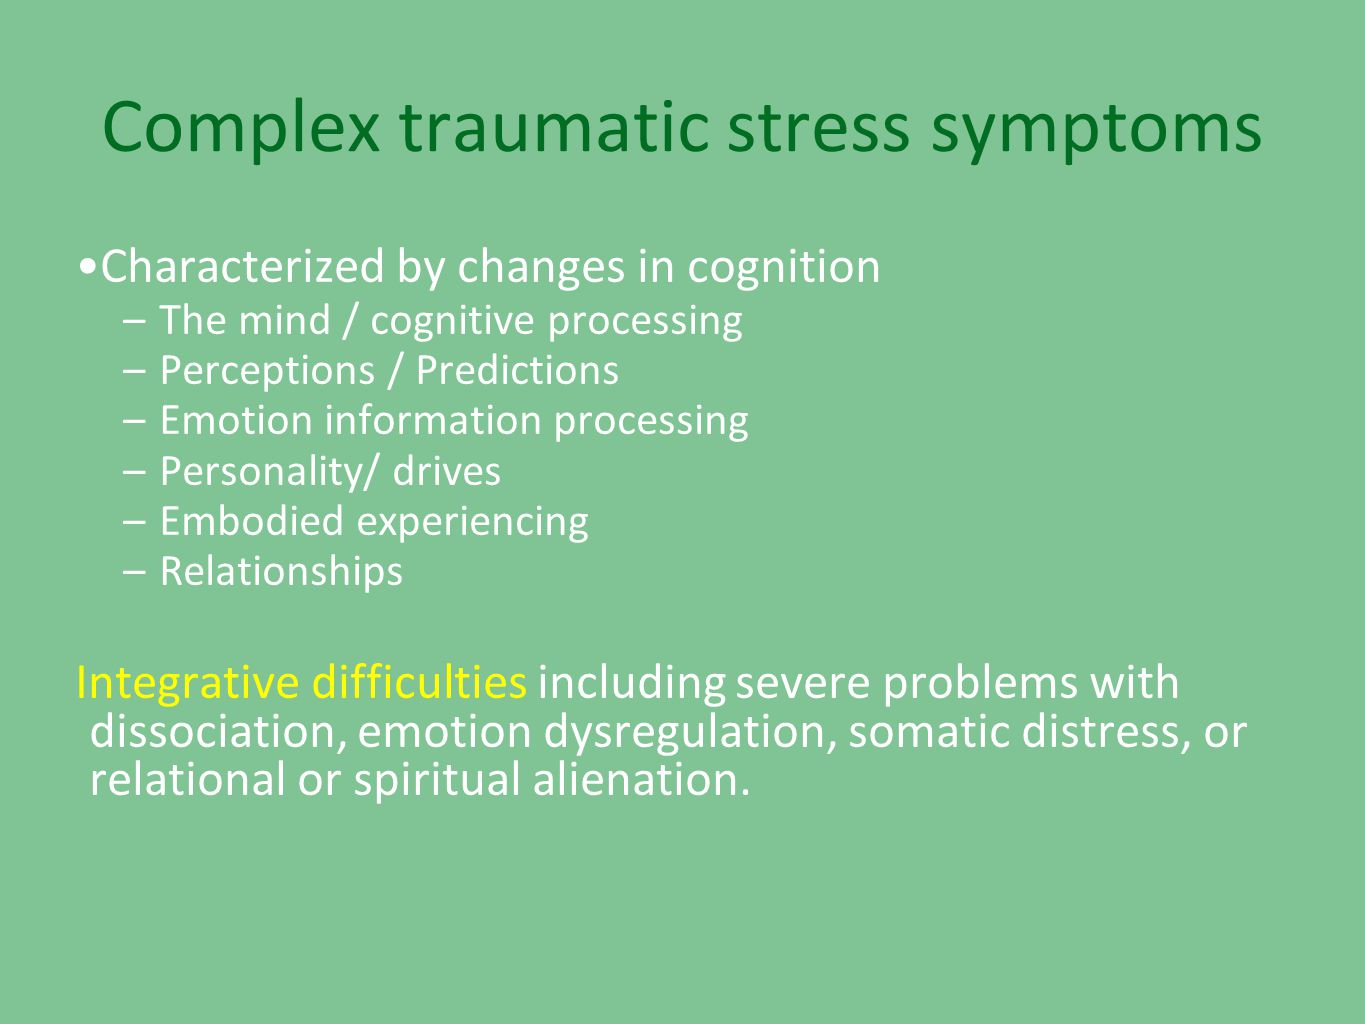 Complex traumatic stress symptoms